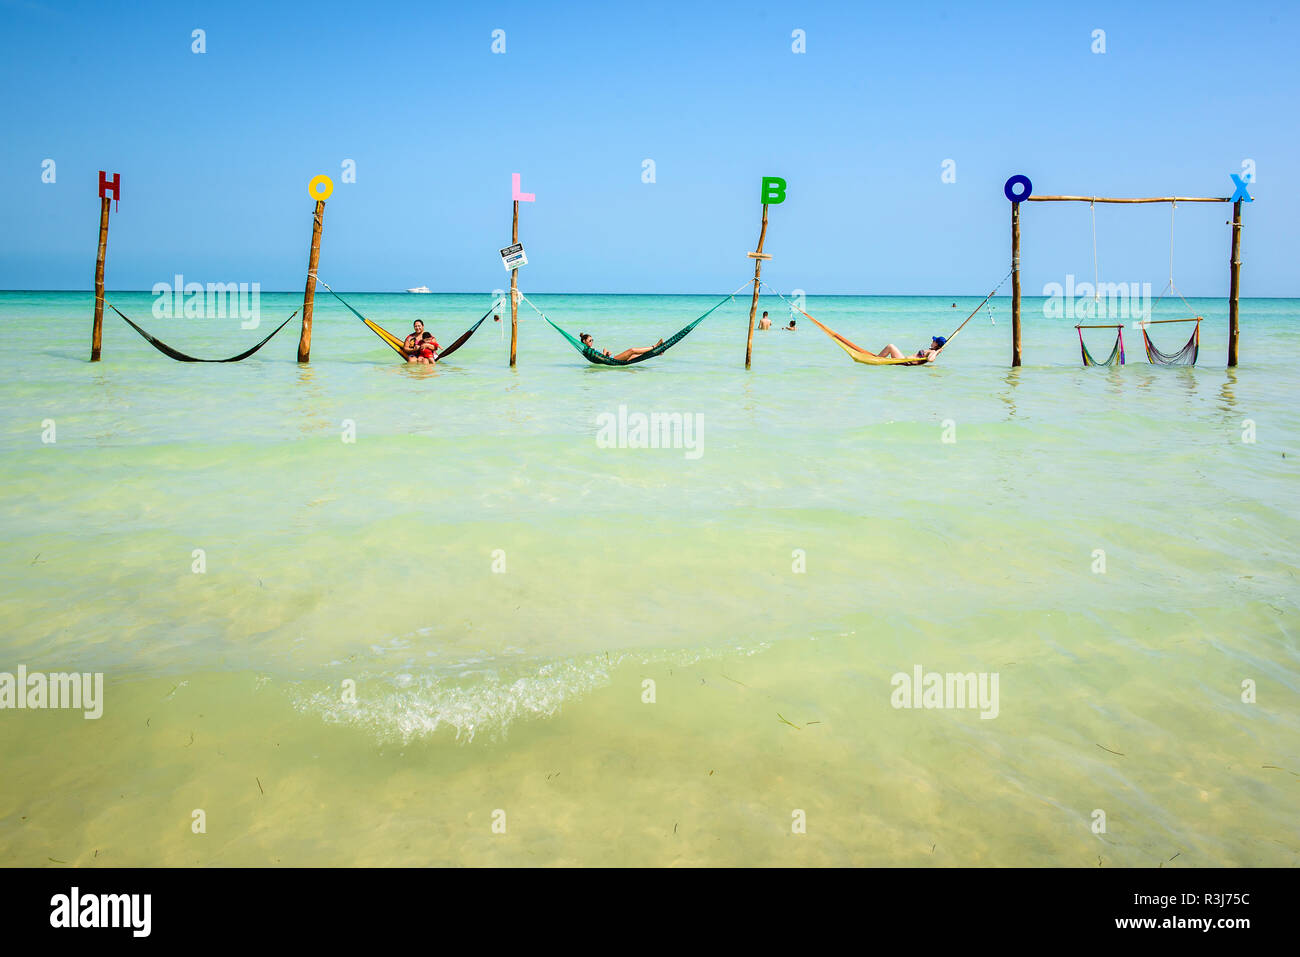 Tourists in hammocks on a beach, Isla Holbox, Quintana Roo, Mexico Stock Photo